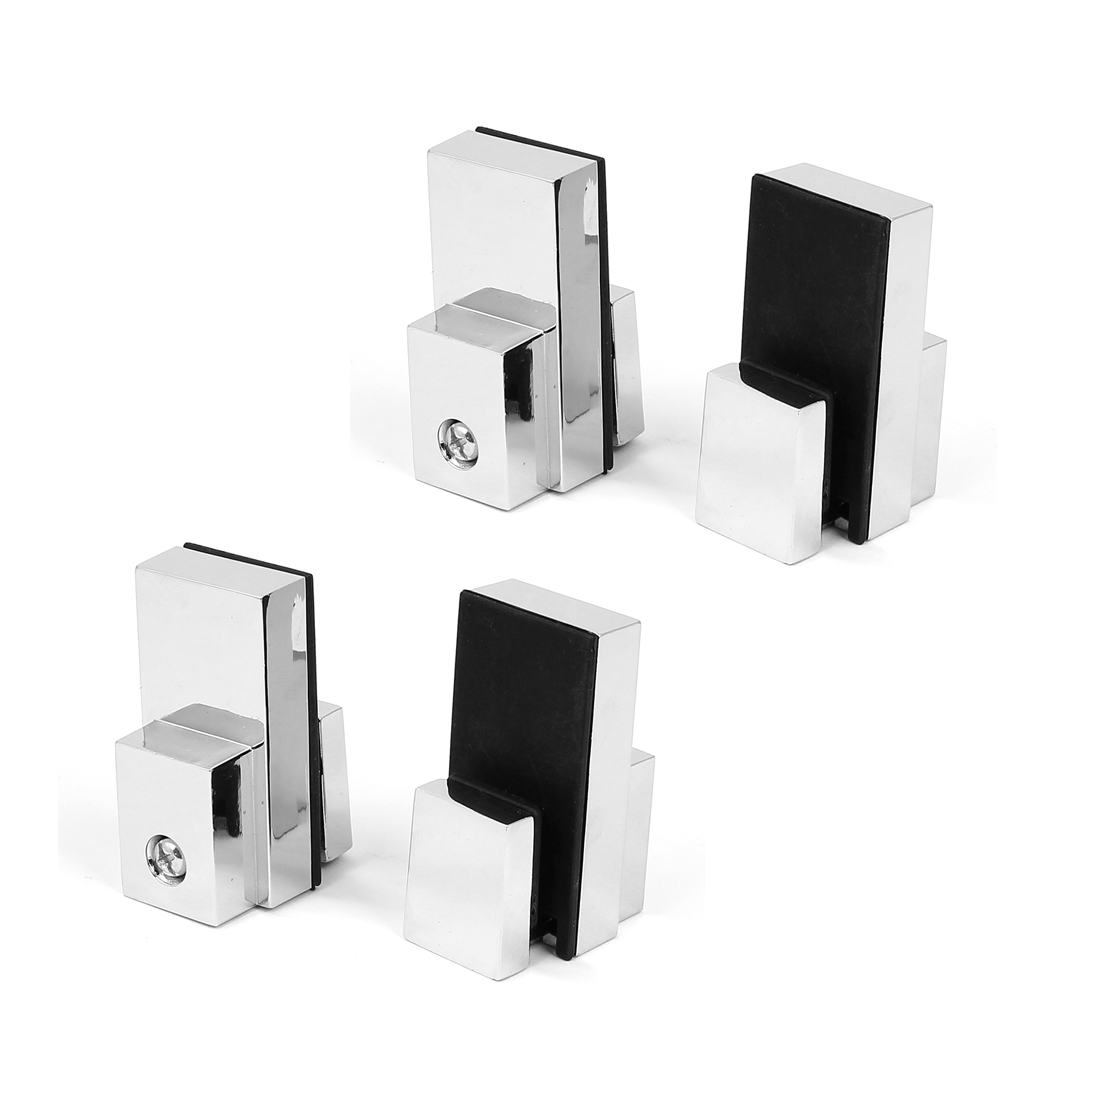 Adjustable 4mm-15mm Thick Stainless Steel Glass Clip Clamp Support Bracket 4pcs